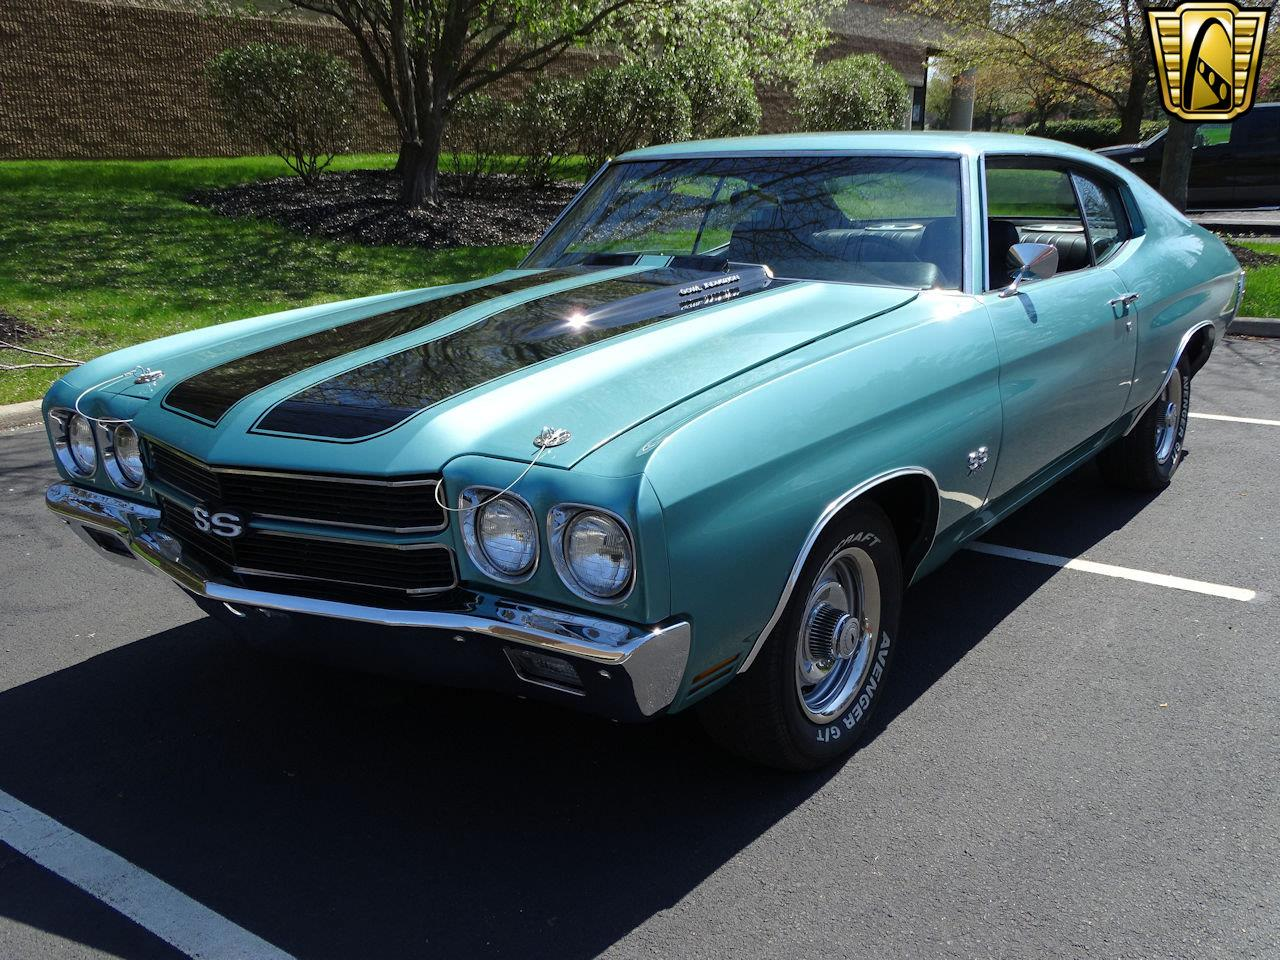 Large Picture of Classic '70 Chevrolet Chevelle located in West Deptford New Jersey Offered by Gateway Classic Cars - Philadelphia - KW6R